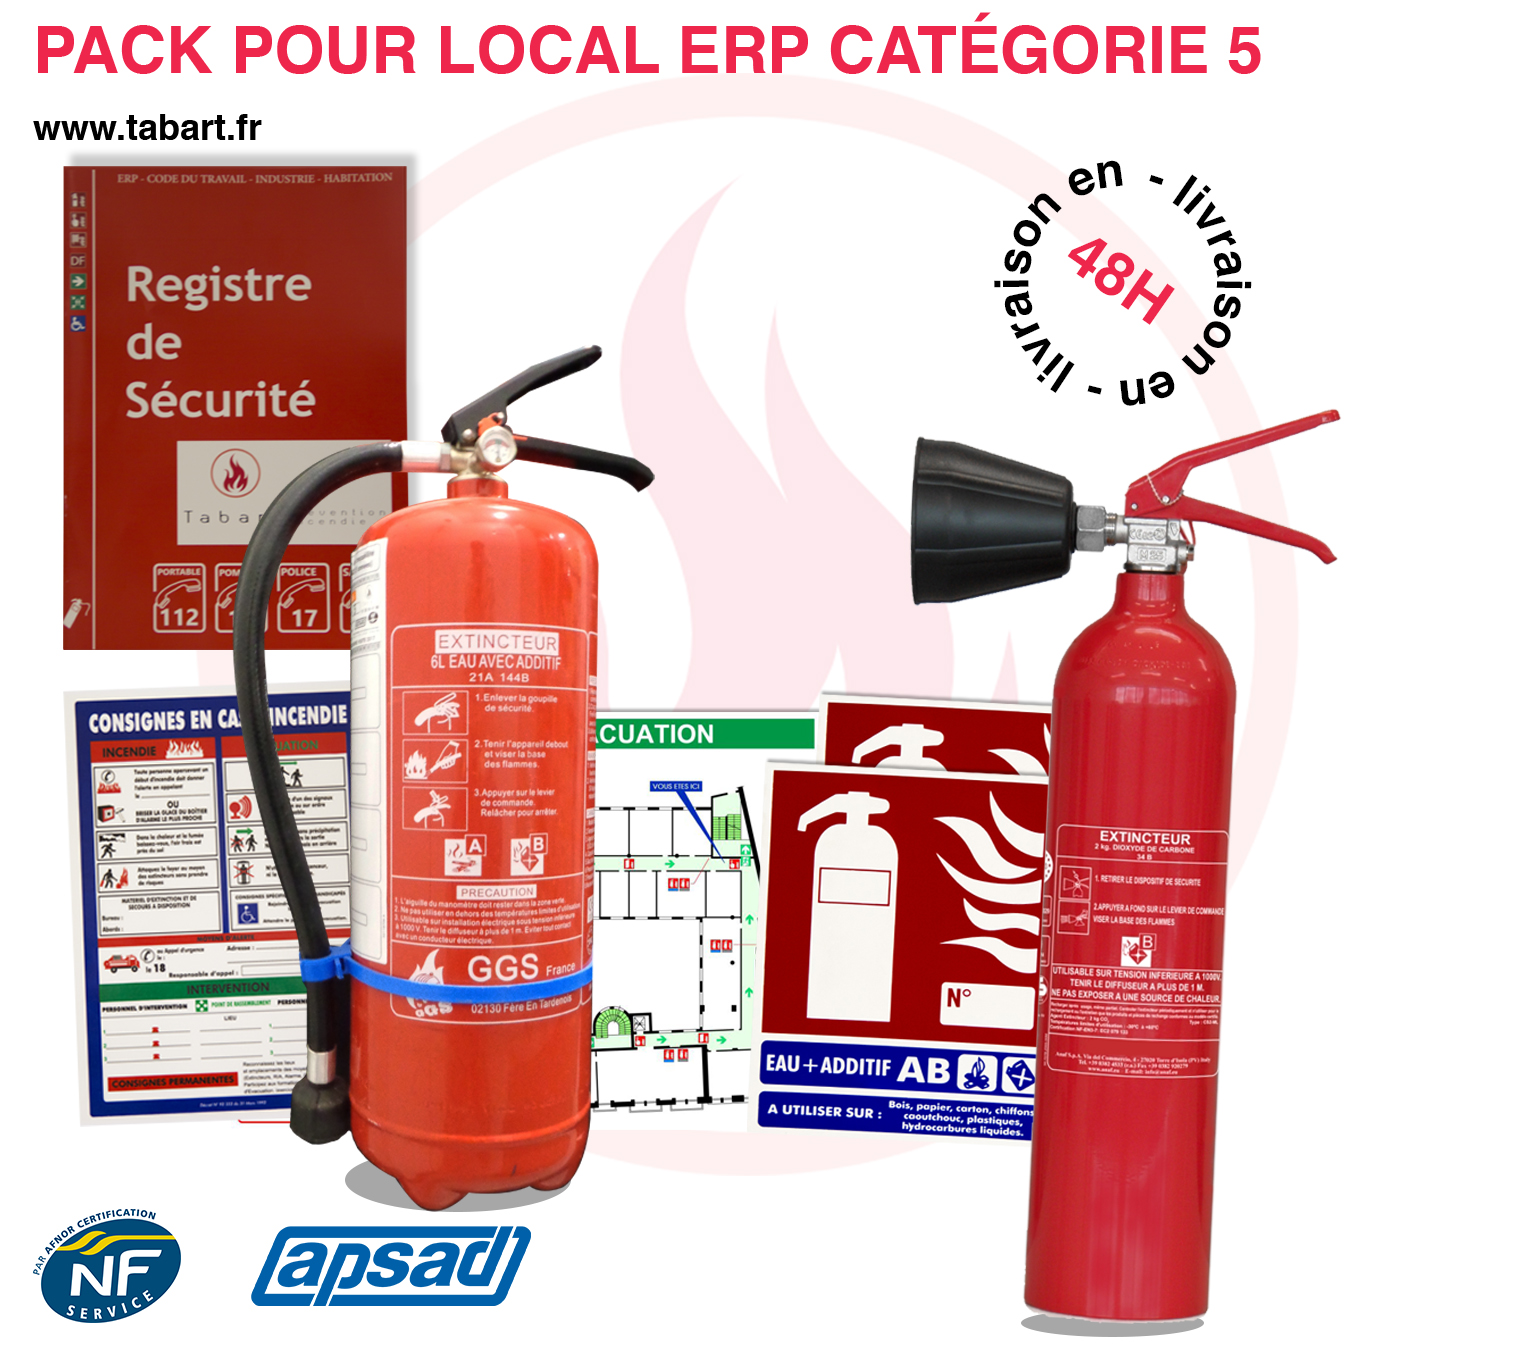 Pack-local-erp-cat4.jpg